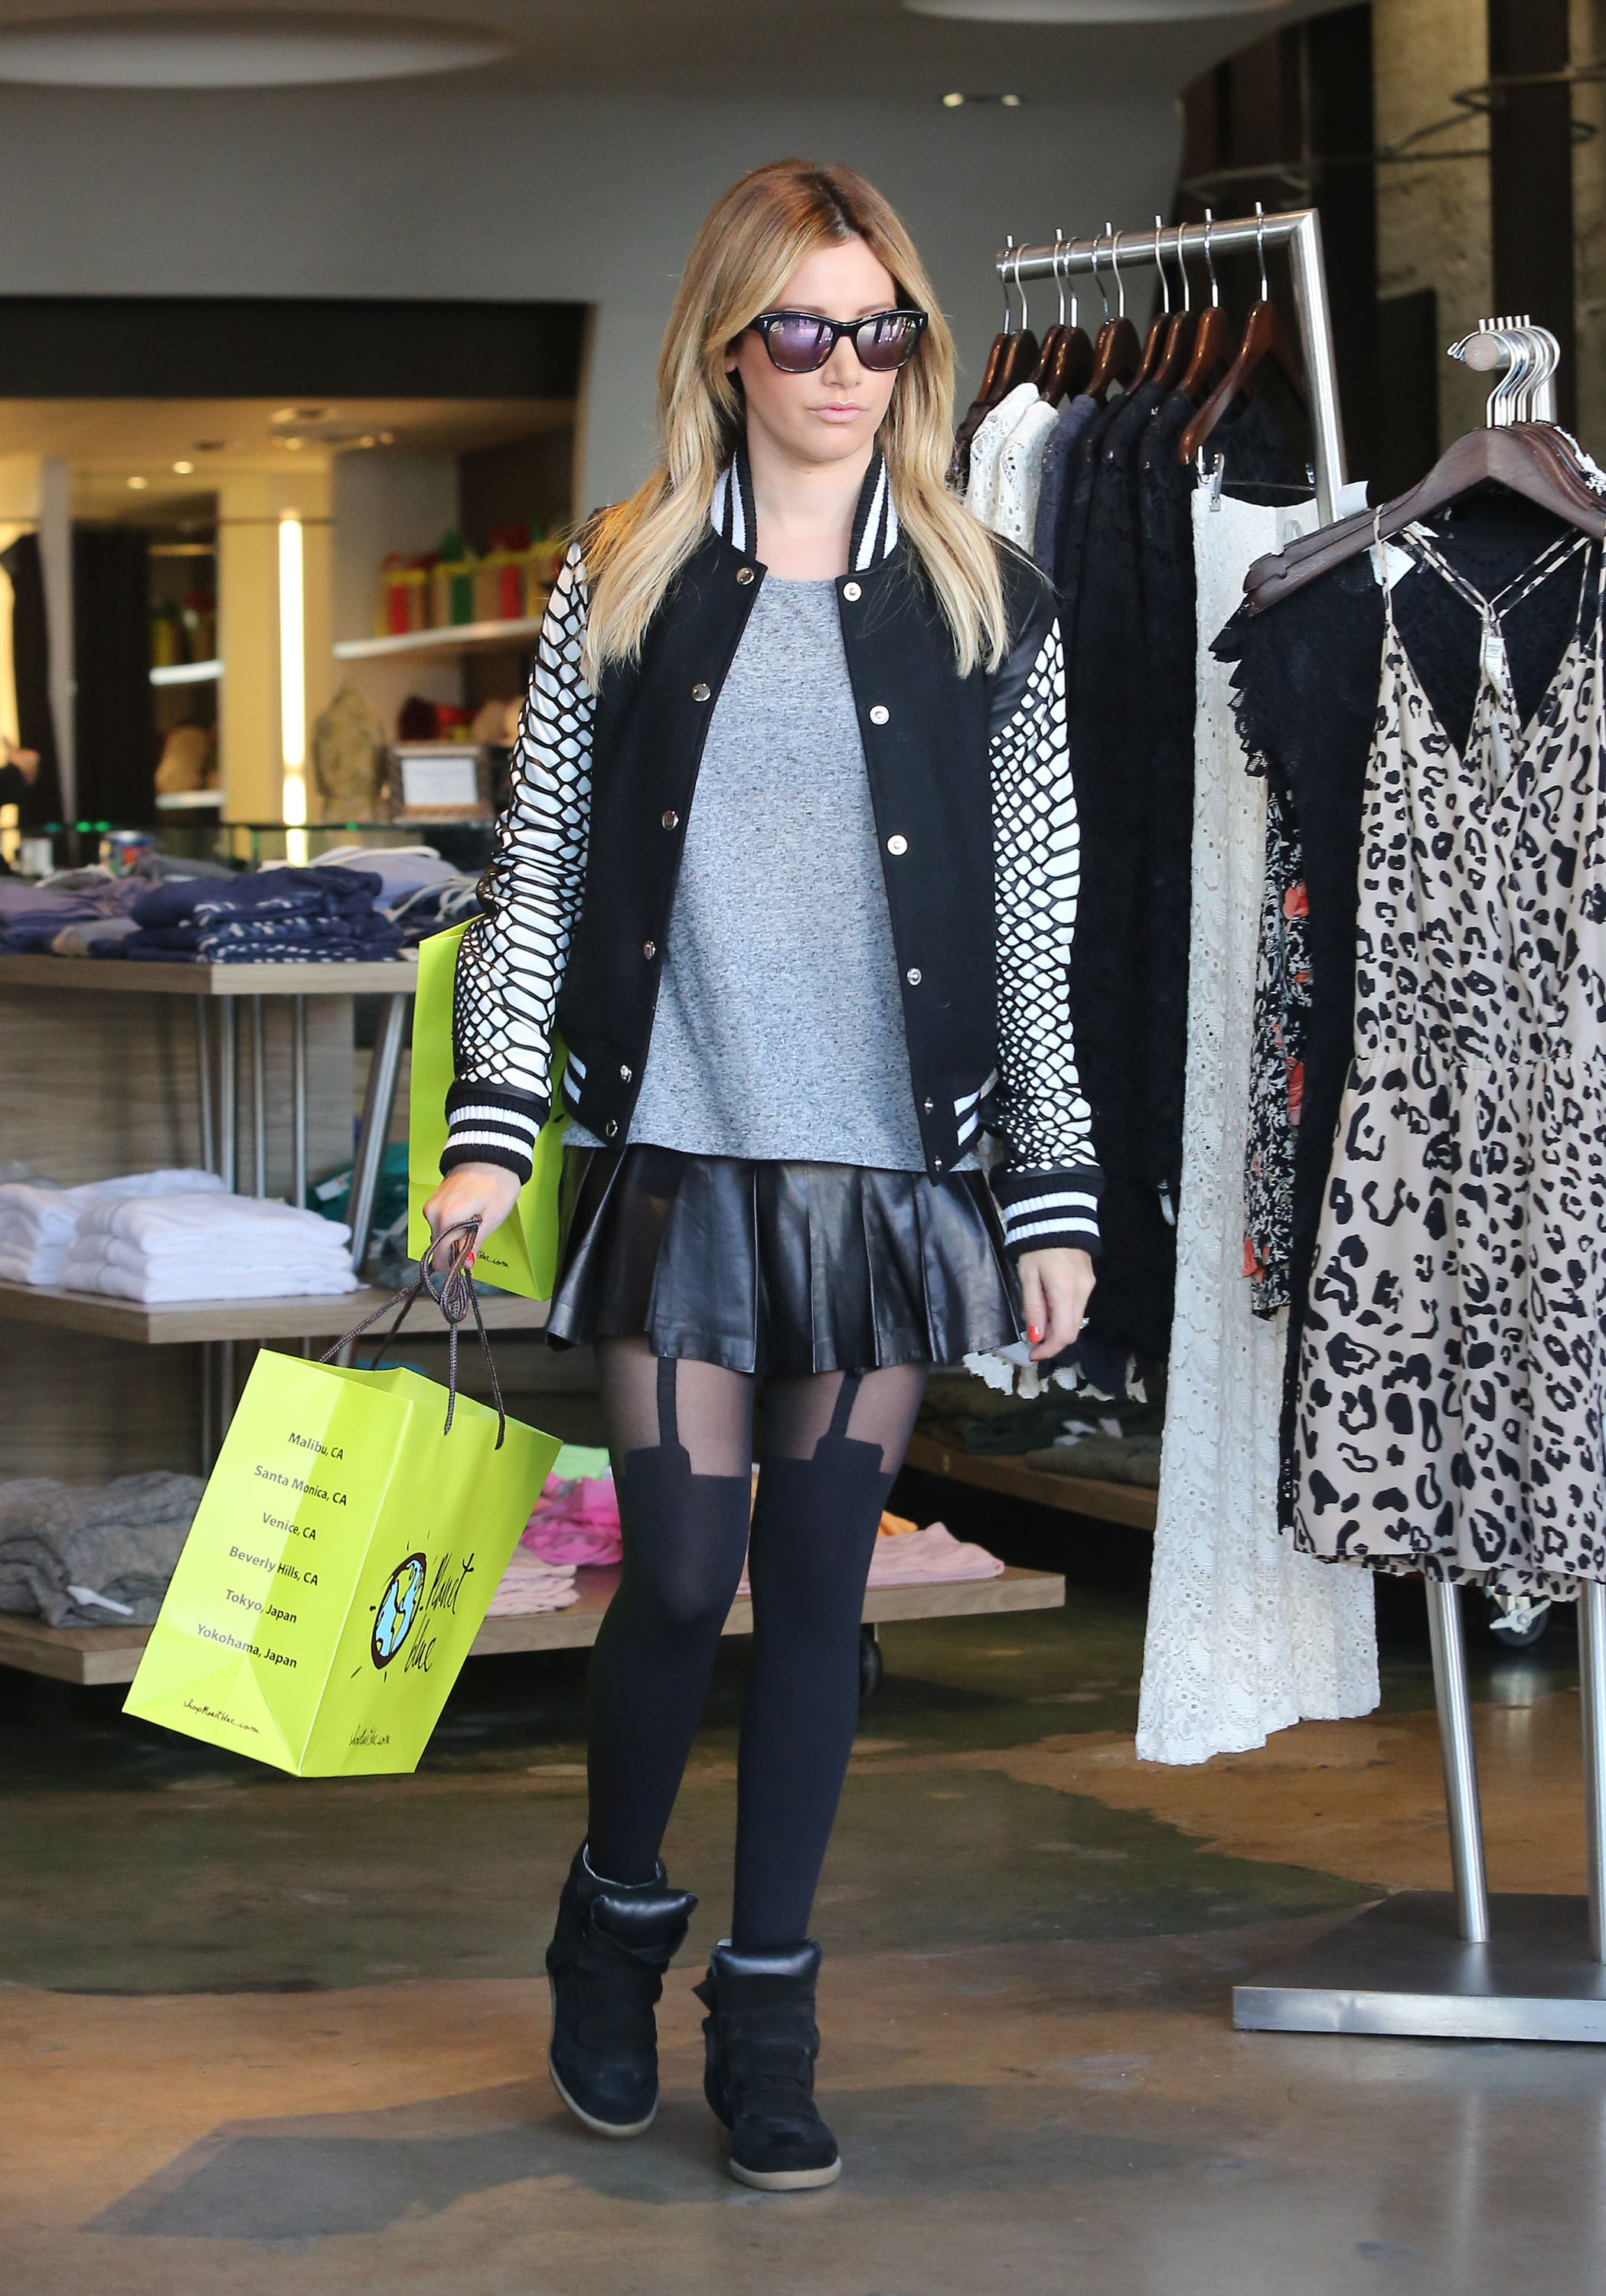 Get the Look: Ashley Tisdale's Bomber Jacket and Leather Skirt